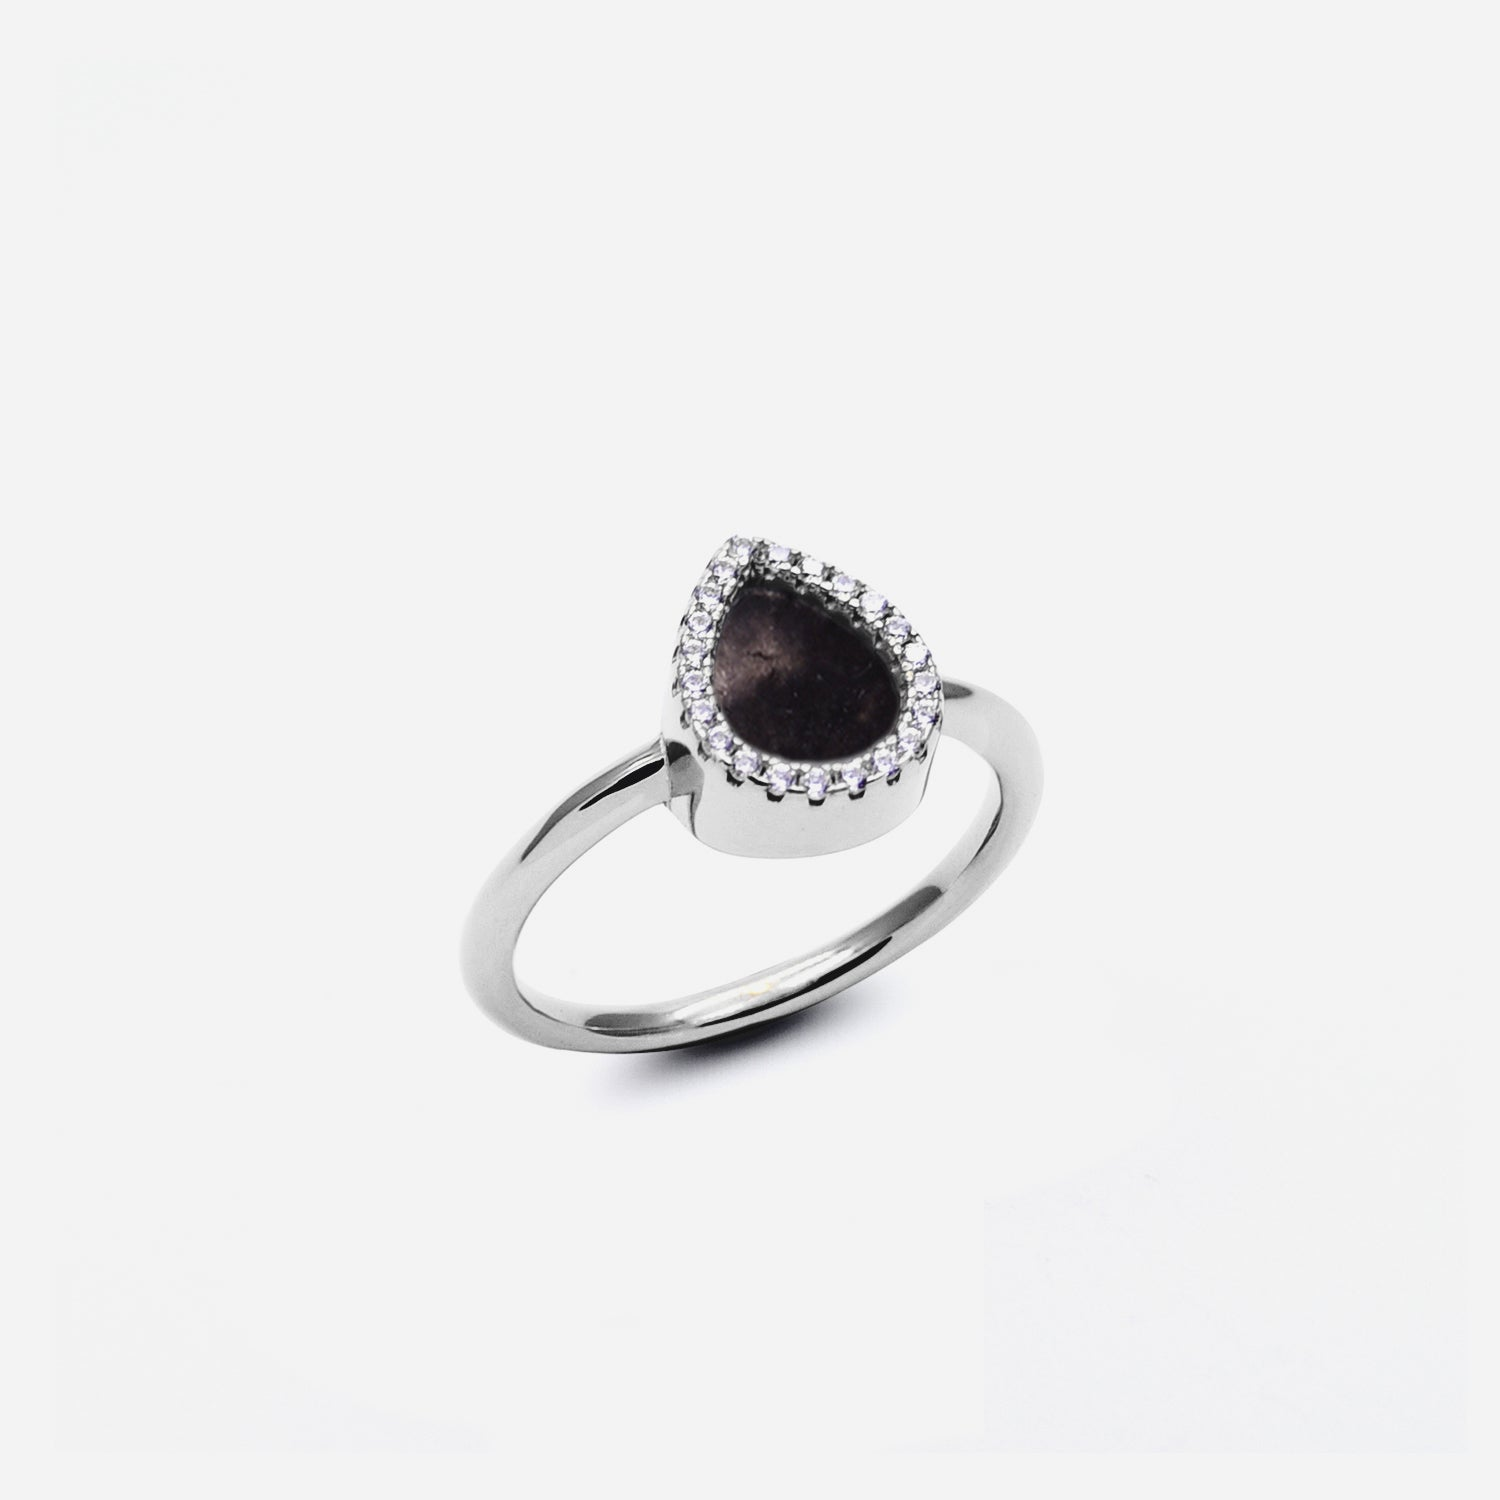 AQUA 水 Small Ring in Black Jade